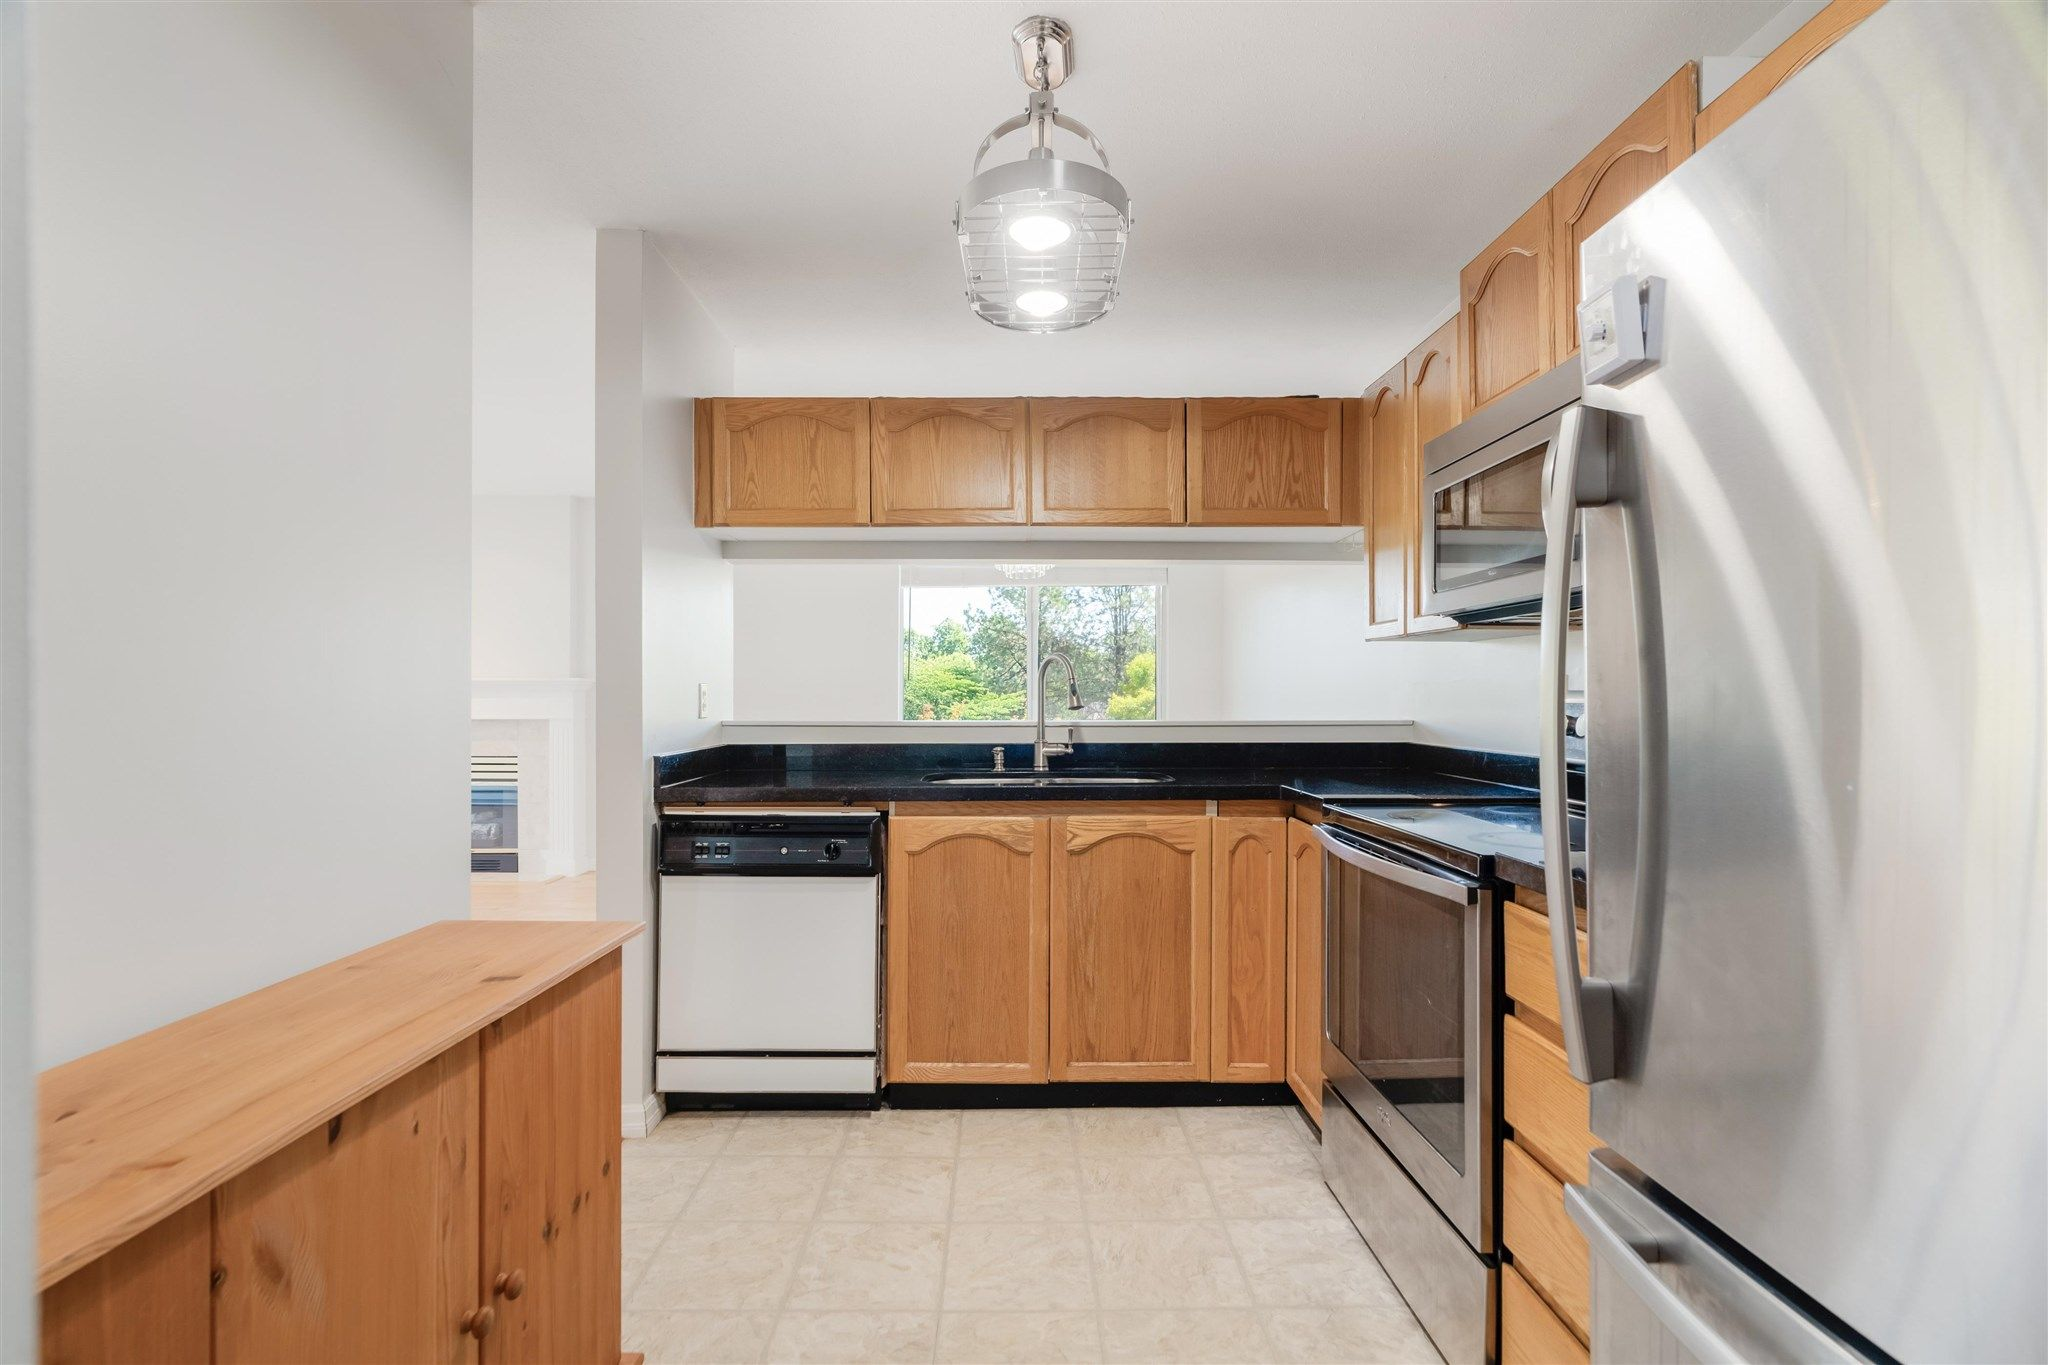 Photo 17: Photos: 303 1171 PIPELINE Road in Coquitlam: New Horizons Condo for sale : MLS®# R2607932